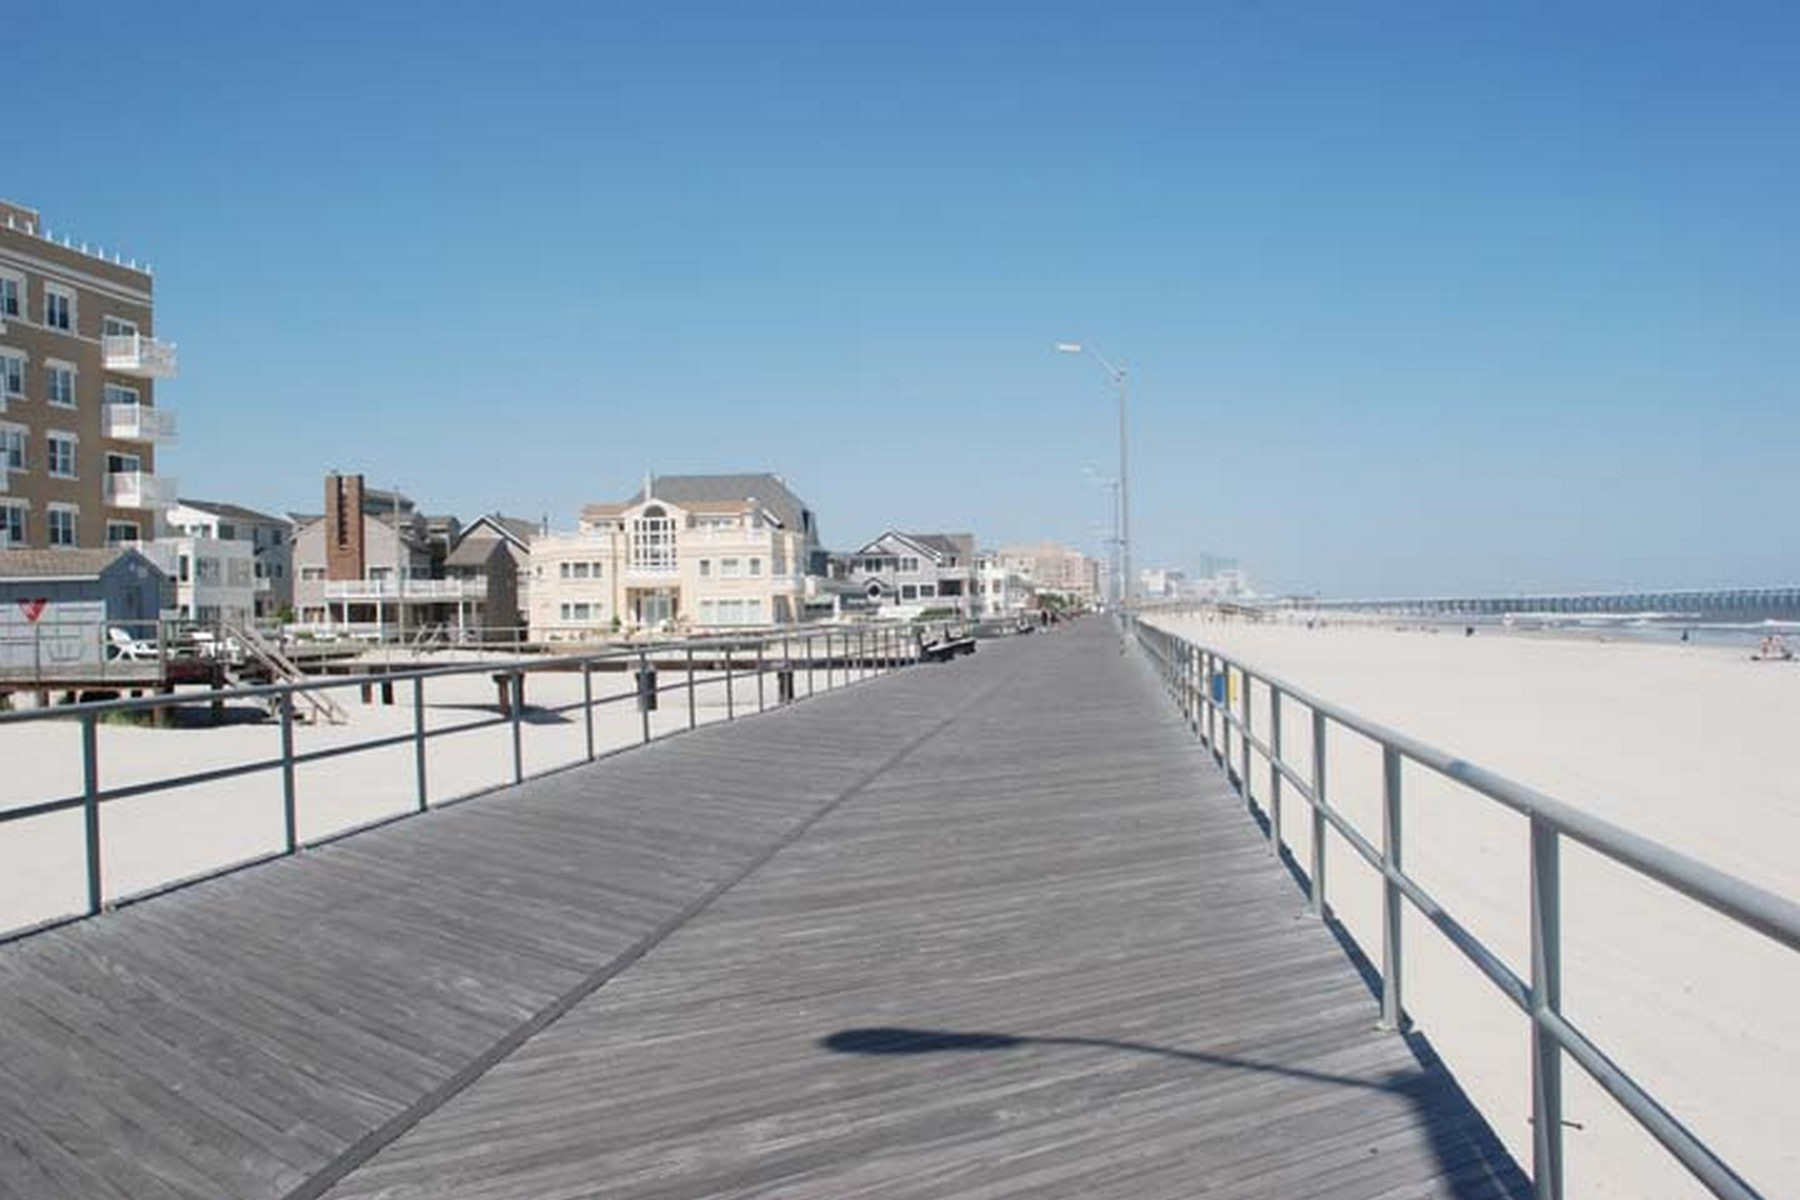 Single Family Homes for Sale at 104 S Baltimore Ave Ventnor, New Jersey 08406 United States